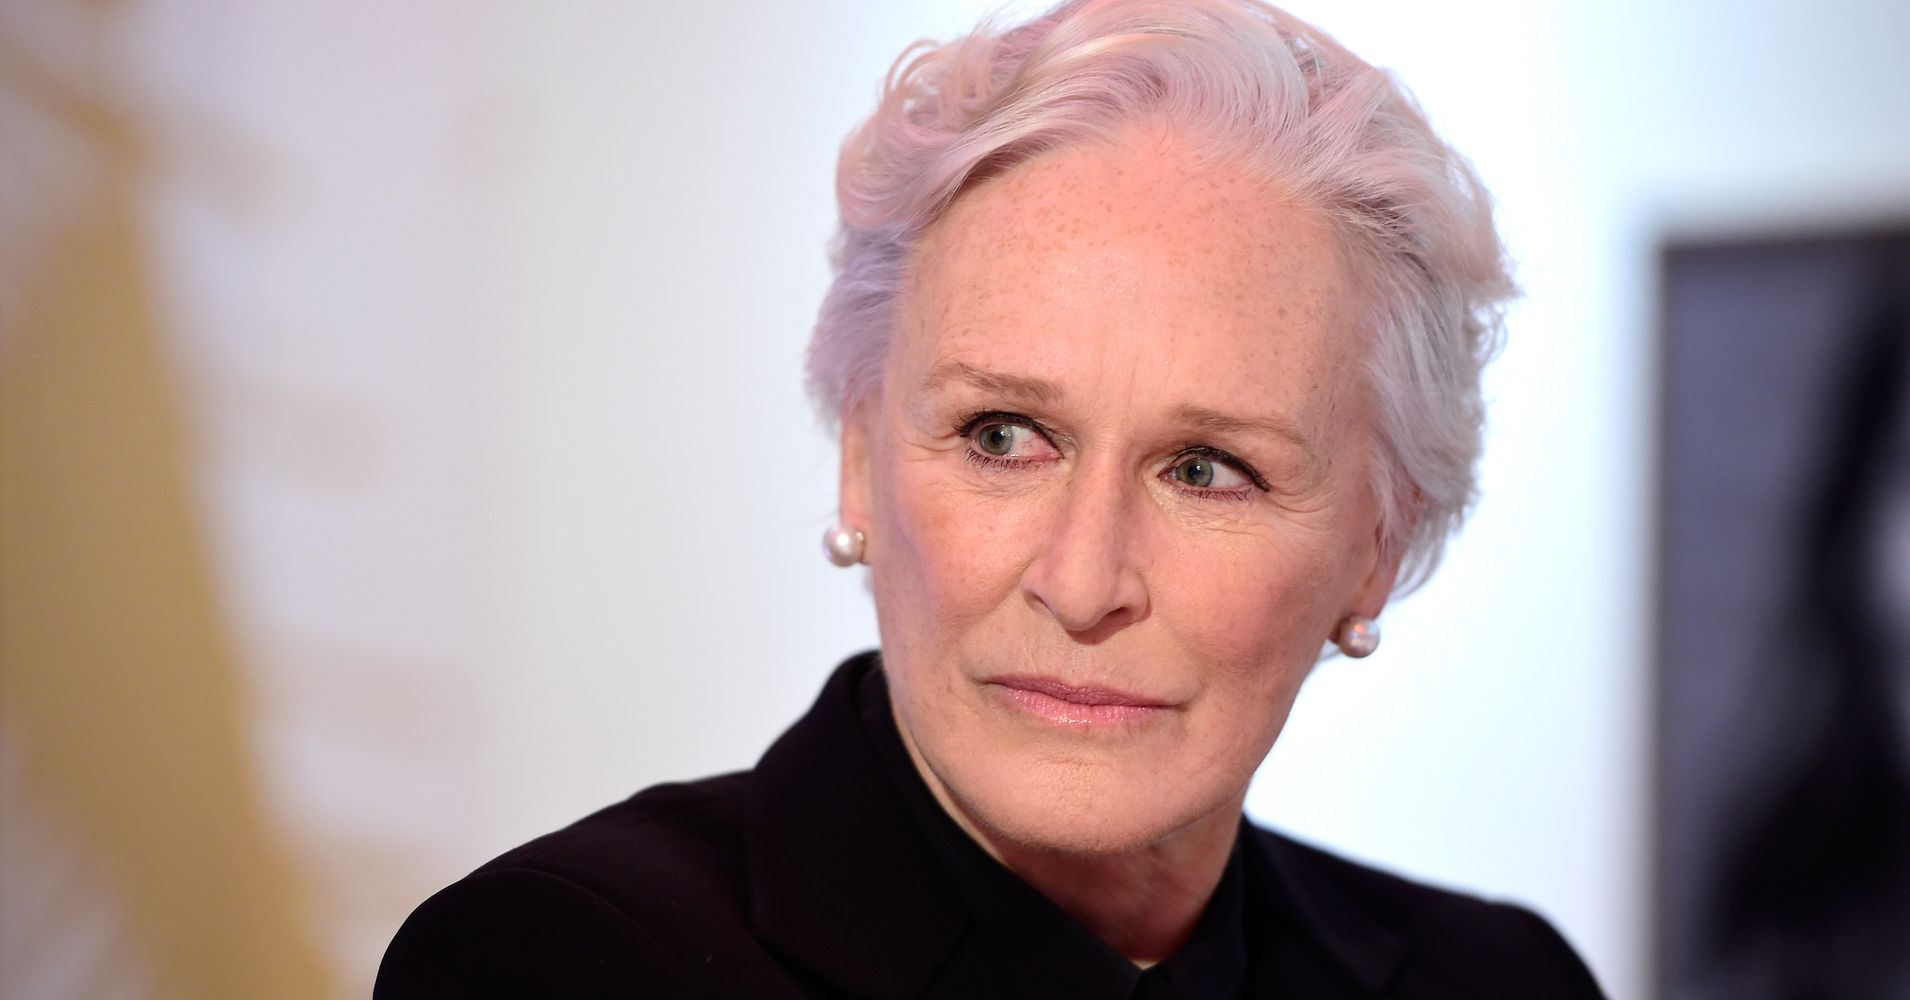 Glenn Close On Weinstein Effect: 'To Condemn All Men Is Stupid And Counterproductive'